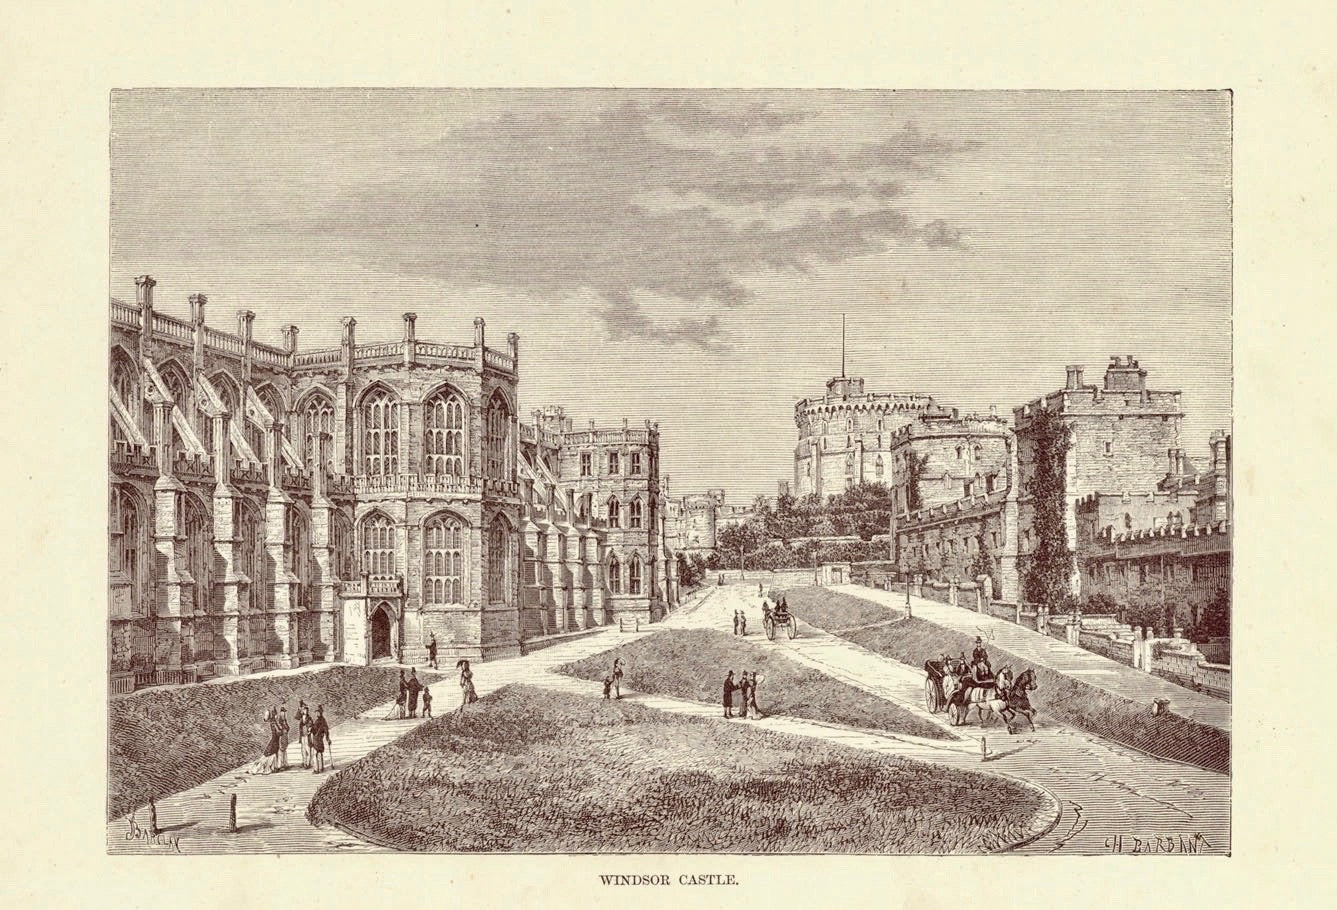 """Windsor Castle""  Wood engraving by Barbant ca 1880. Very light age toning."